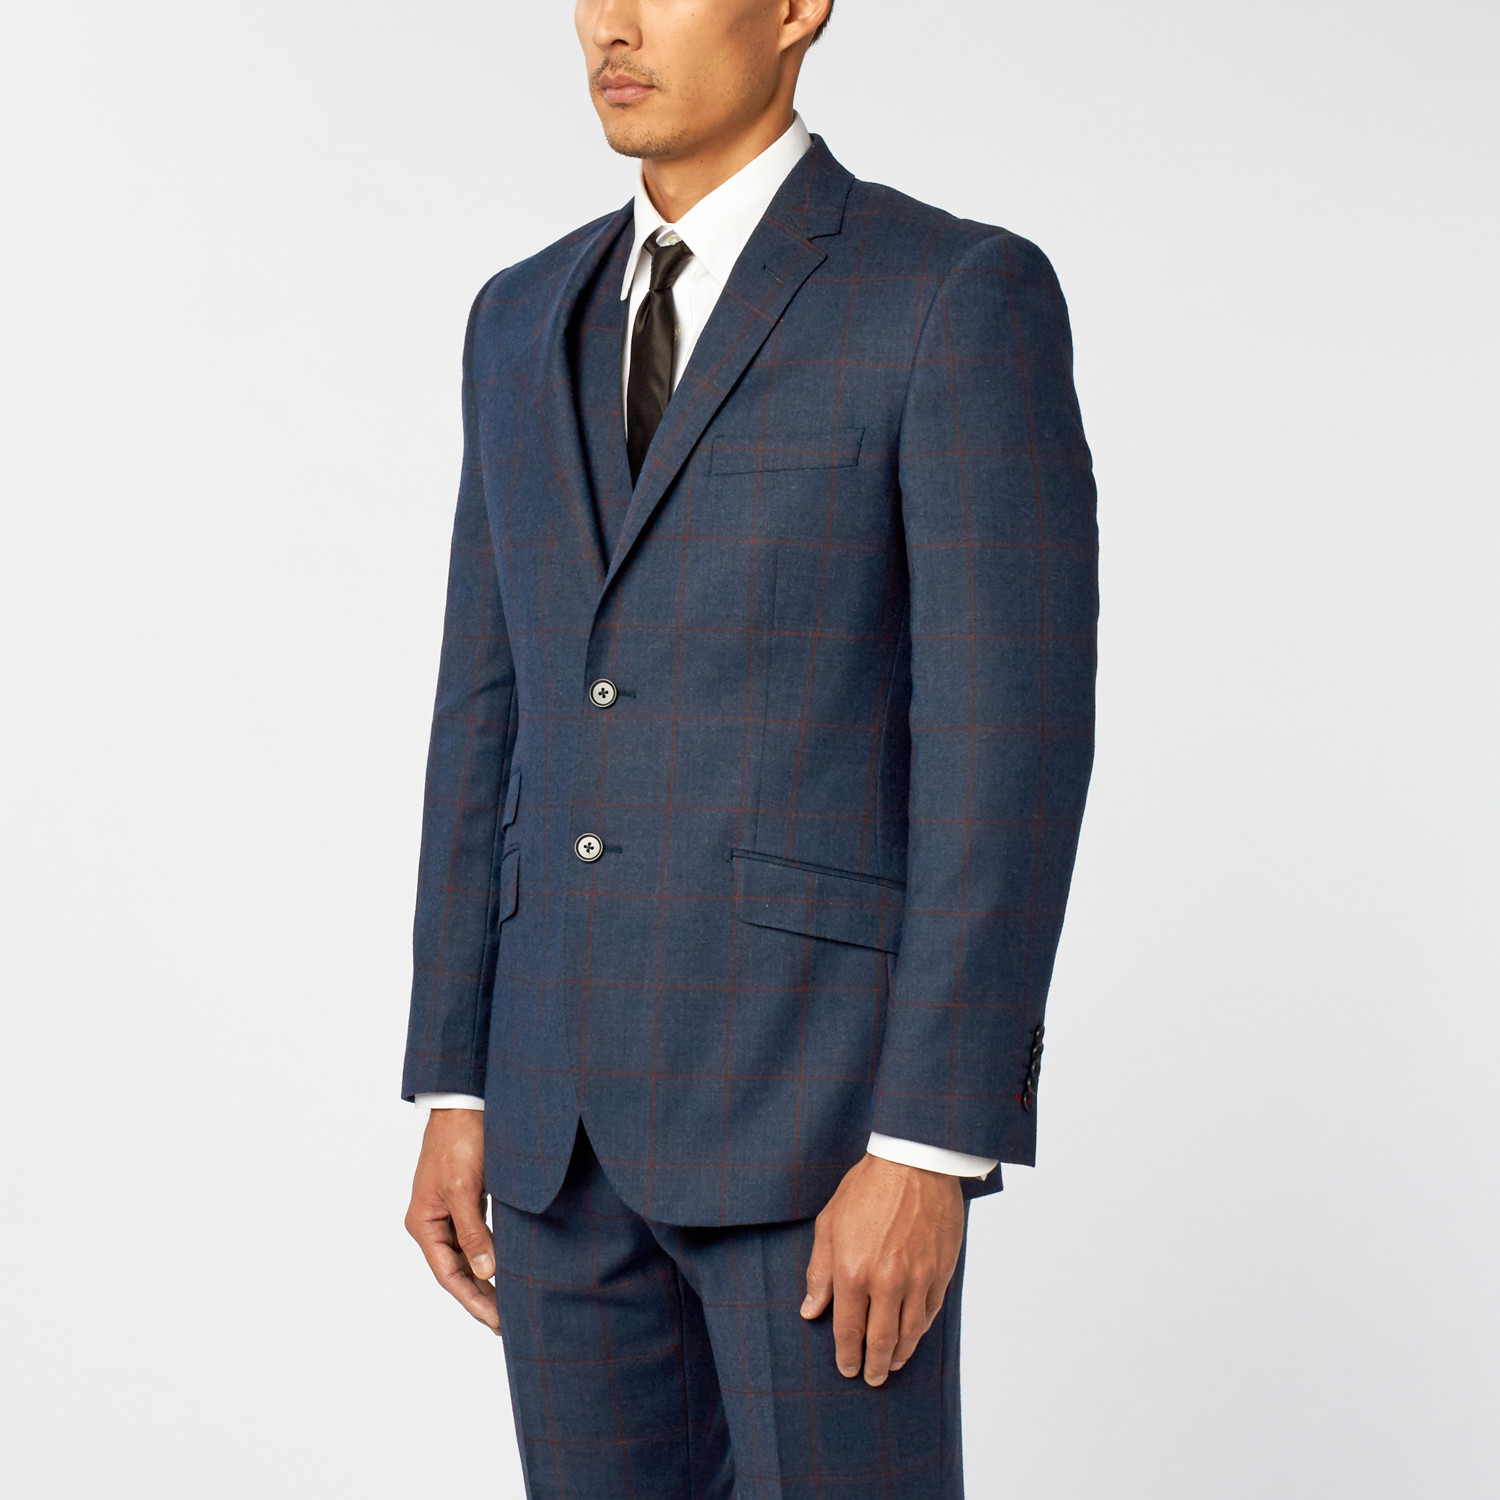 Piece suit blue us 48r fashion clearance touch of modern